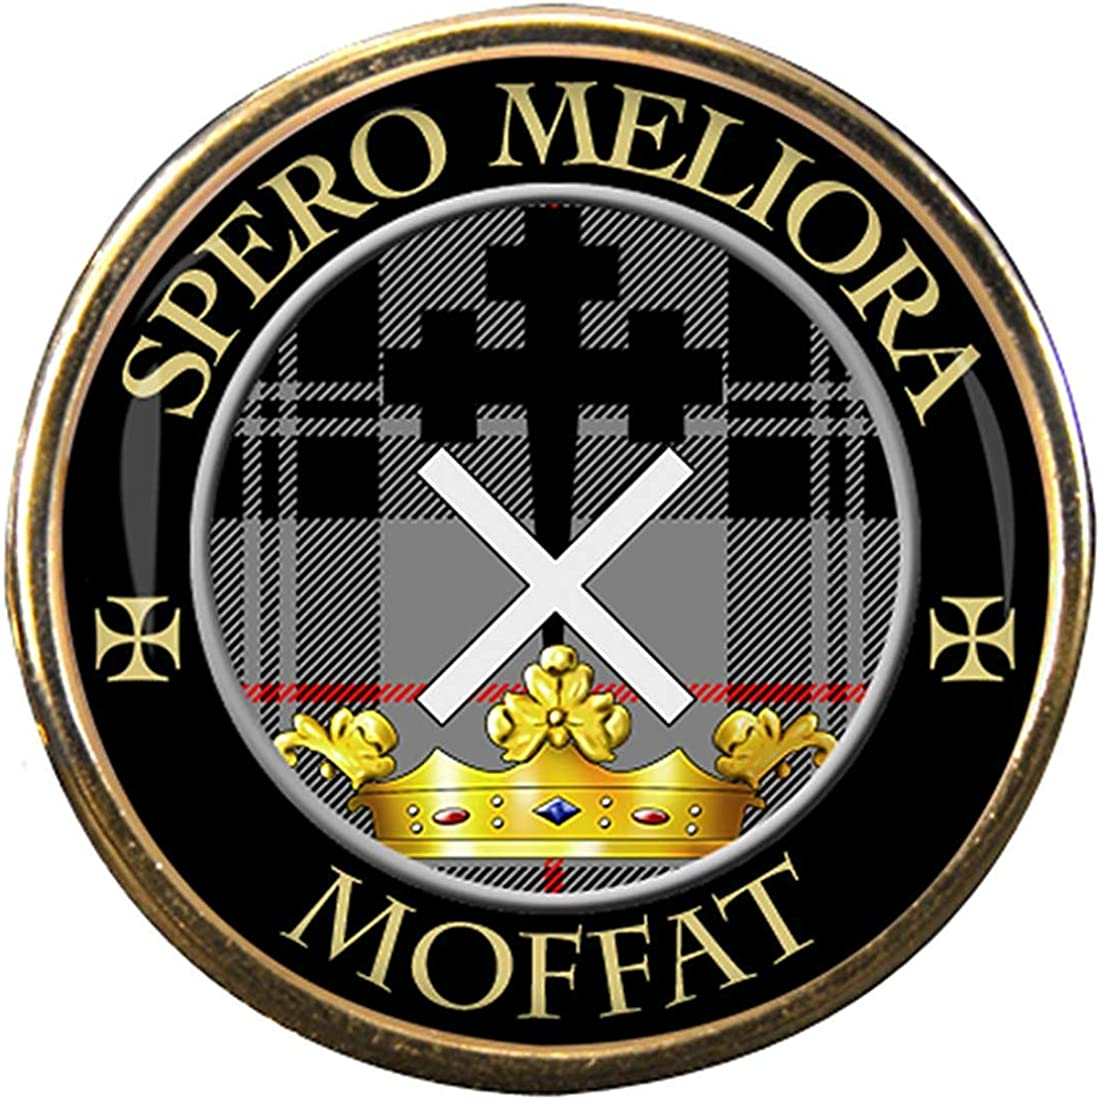 Moffat Scottish Clan Crest Lapel Pin Badge Gift